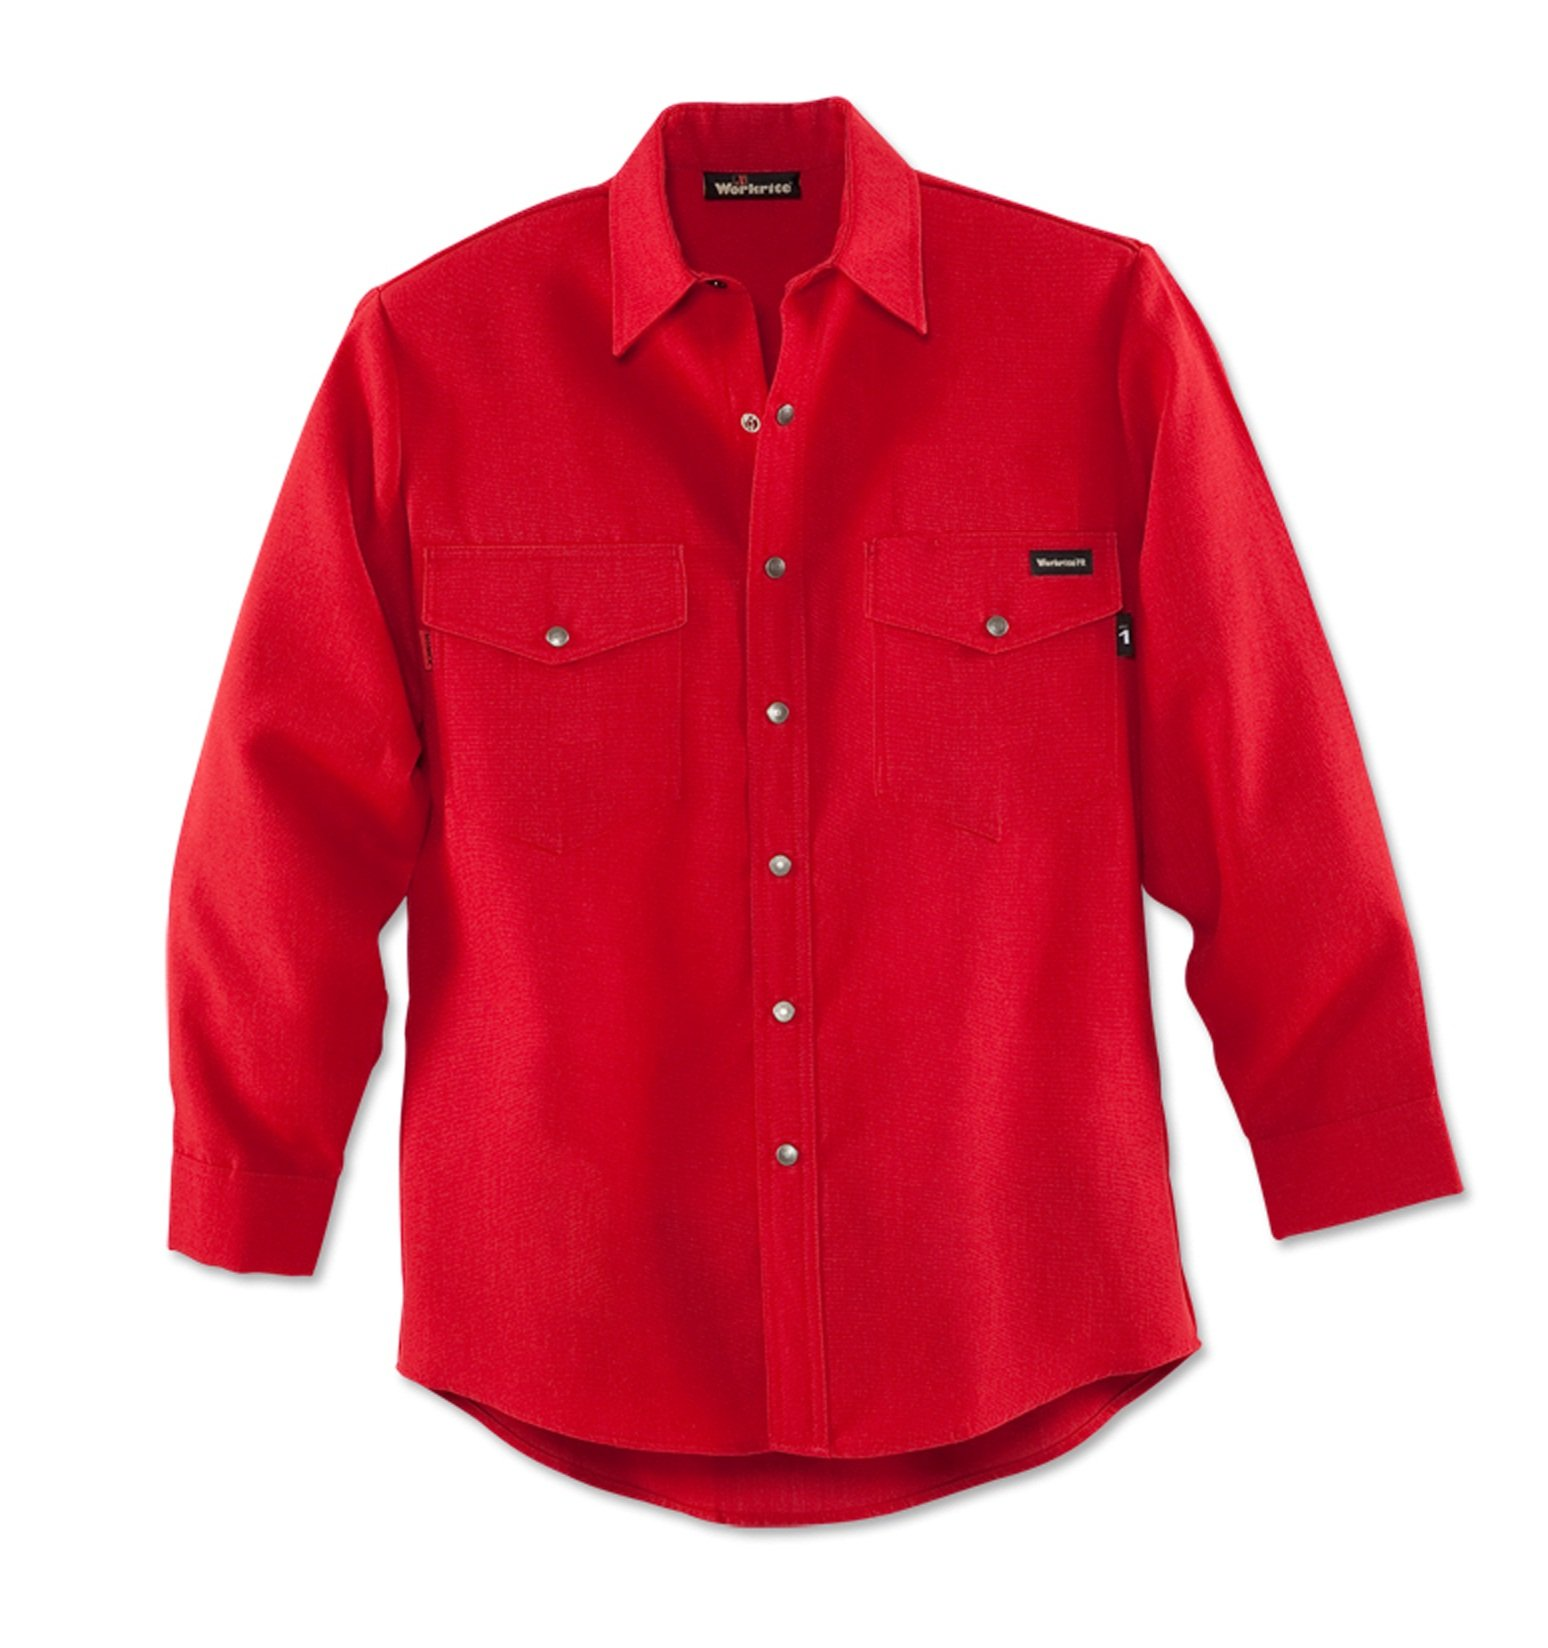 Workrite 220NX45RD42-0L Flame Resistant 4.5 oz Nomex IIIA Long Sleeve Western-Style Shirt, Snap Cuff, 42 Chest Size, Long Length, Red